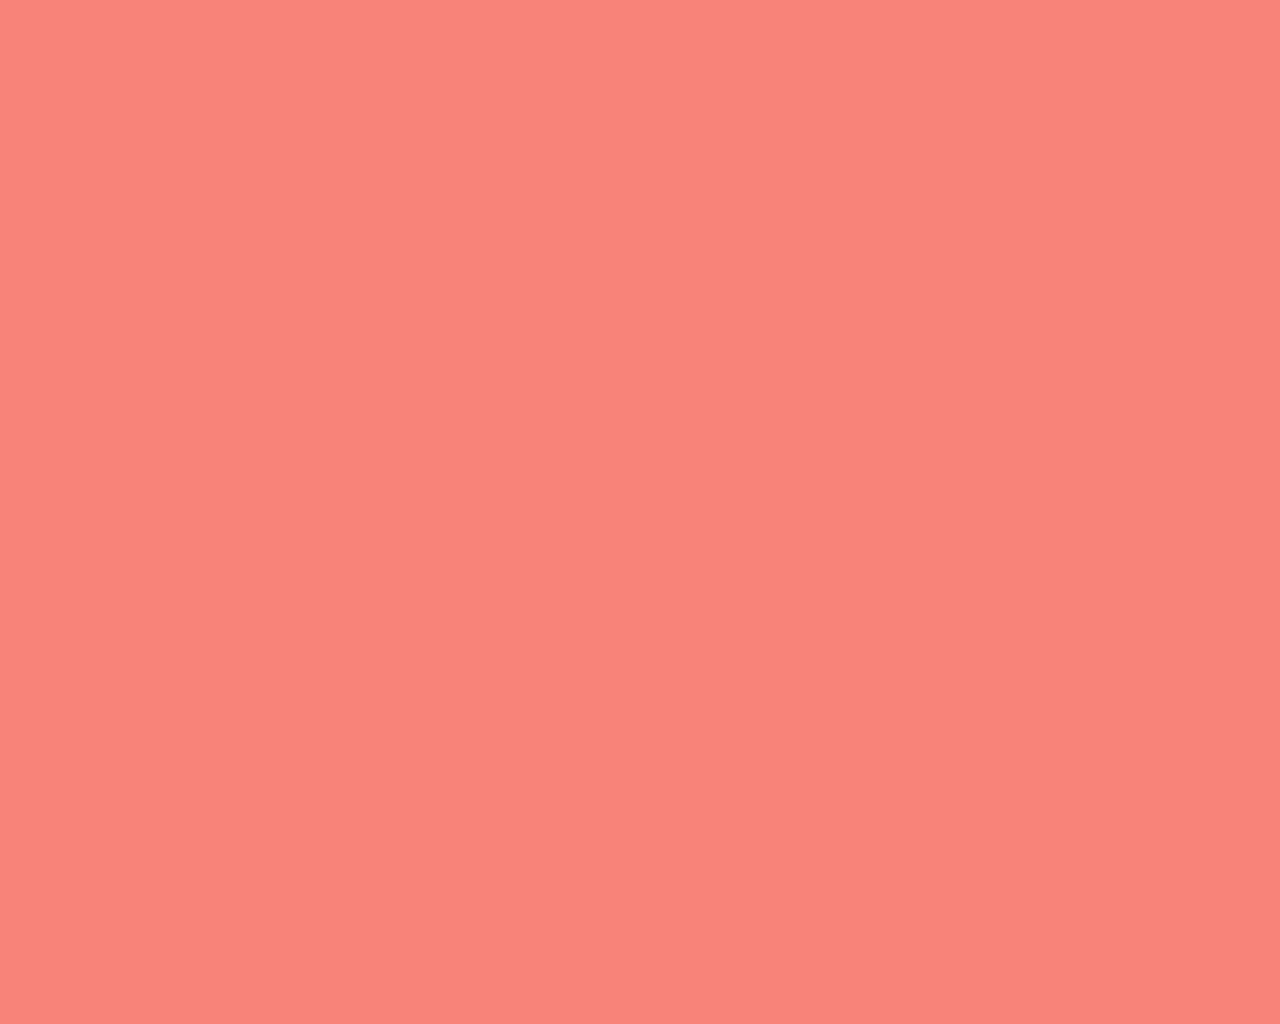 1280x1024 resolution Coral Pink solid color background view and 1280x1024